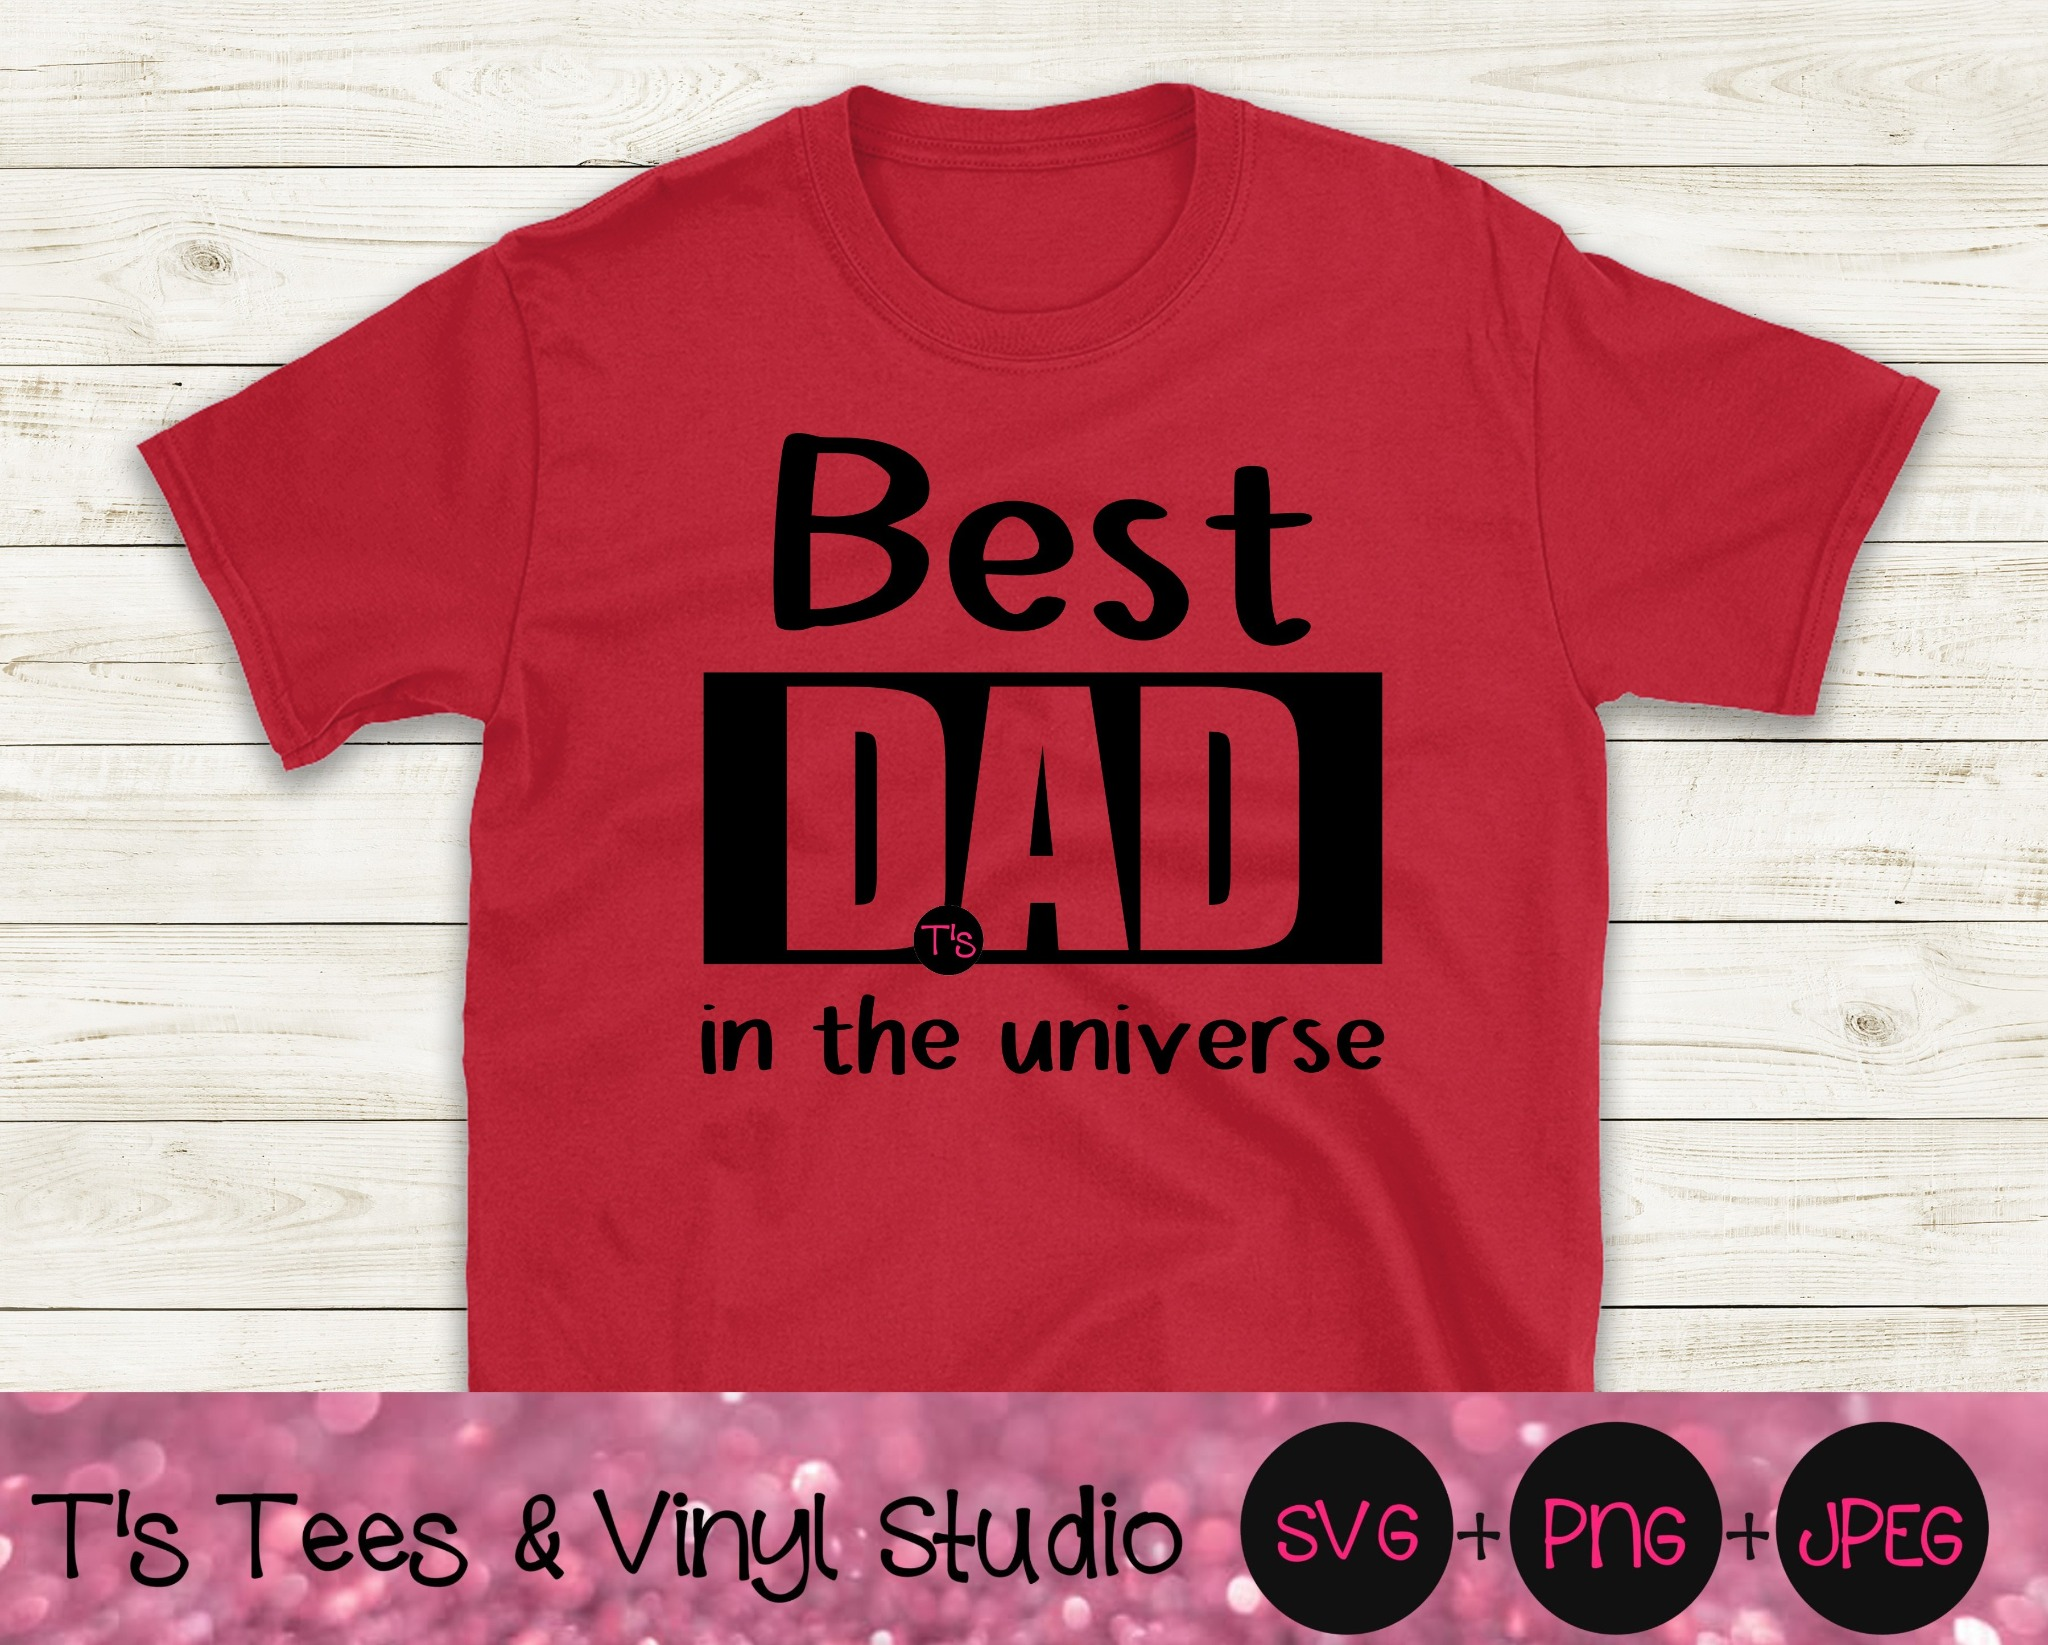 Best Dad Svg, Dad Svg, Father's Day Svg, Universe Svg, Best Dad Ever Svg, Best Dad Png, Dad Png, Fat